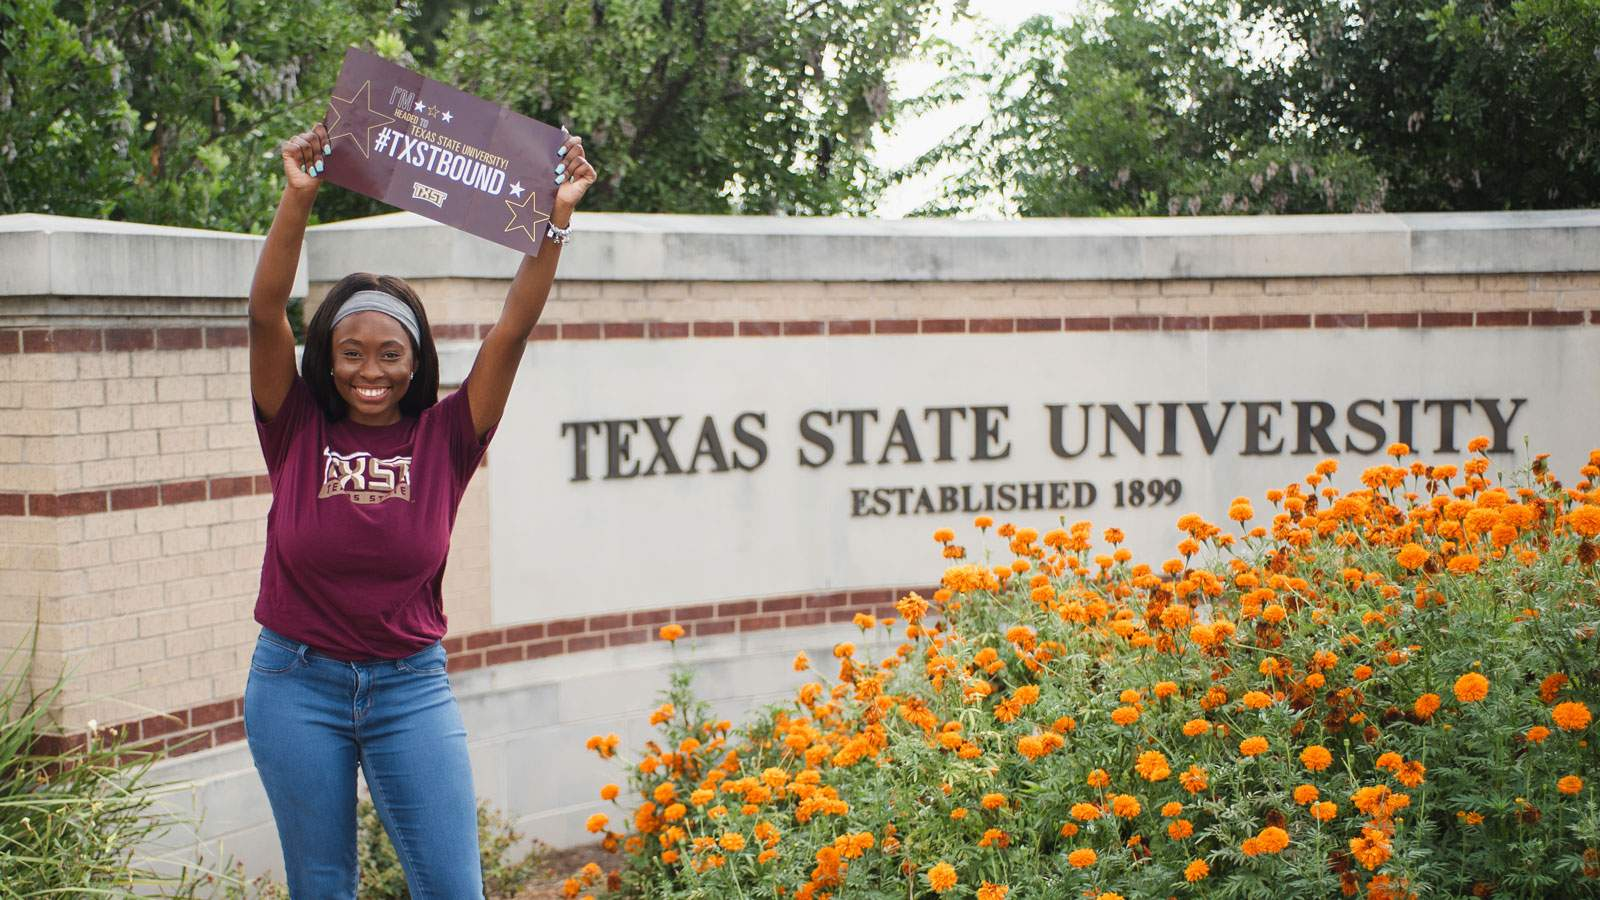 student poses with banner in front of TXST sign